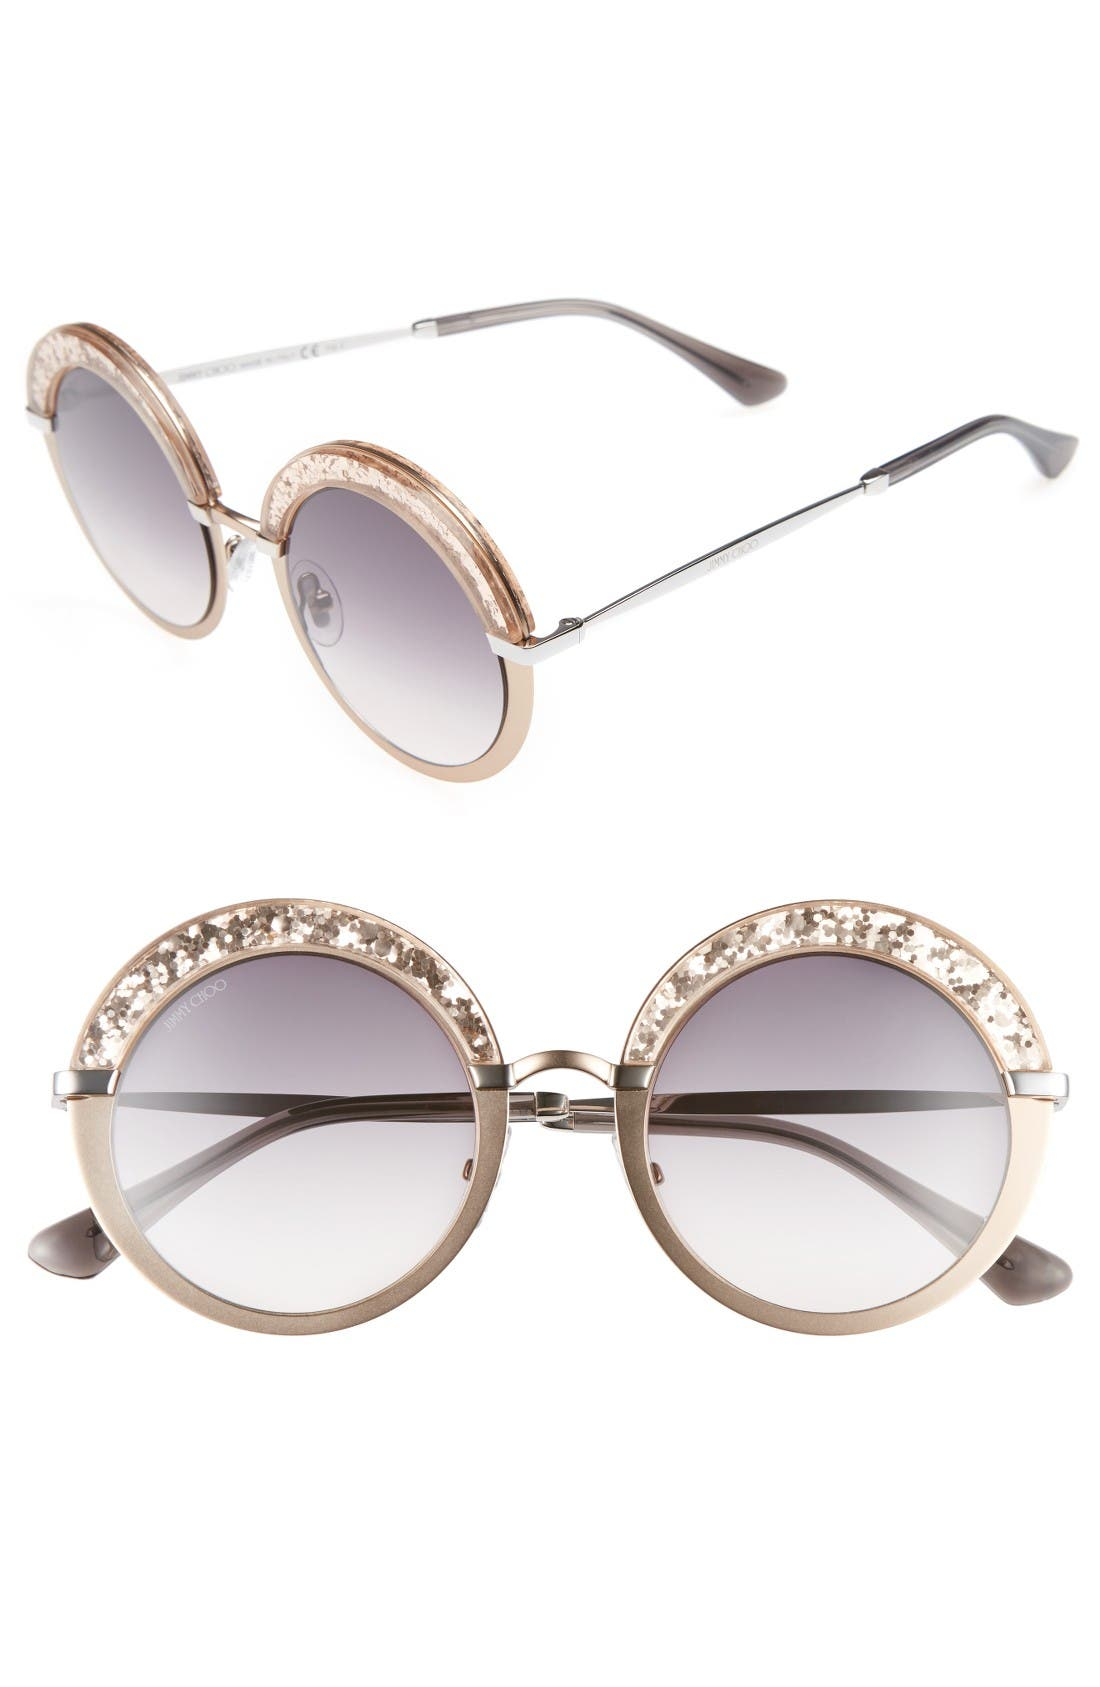 JIMMY CHOO Gotha/S 50mm Round Sunglasses